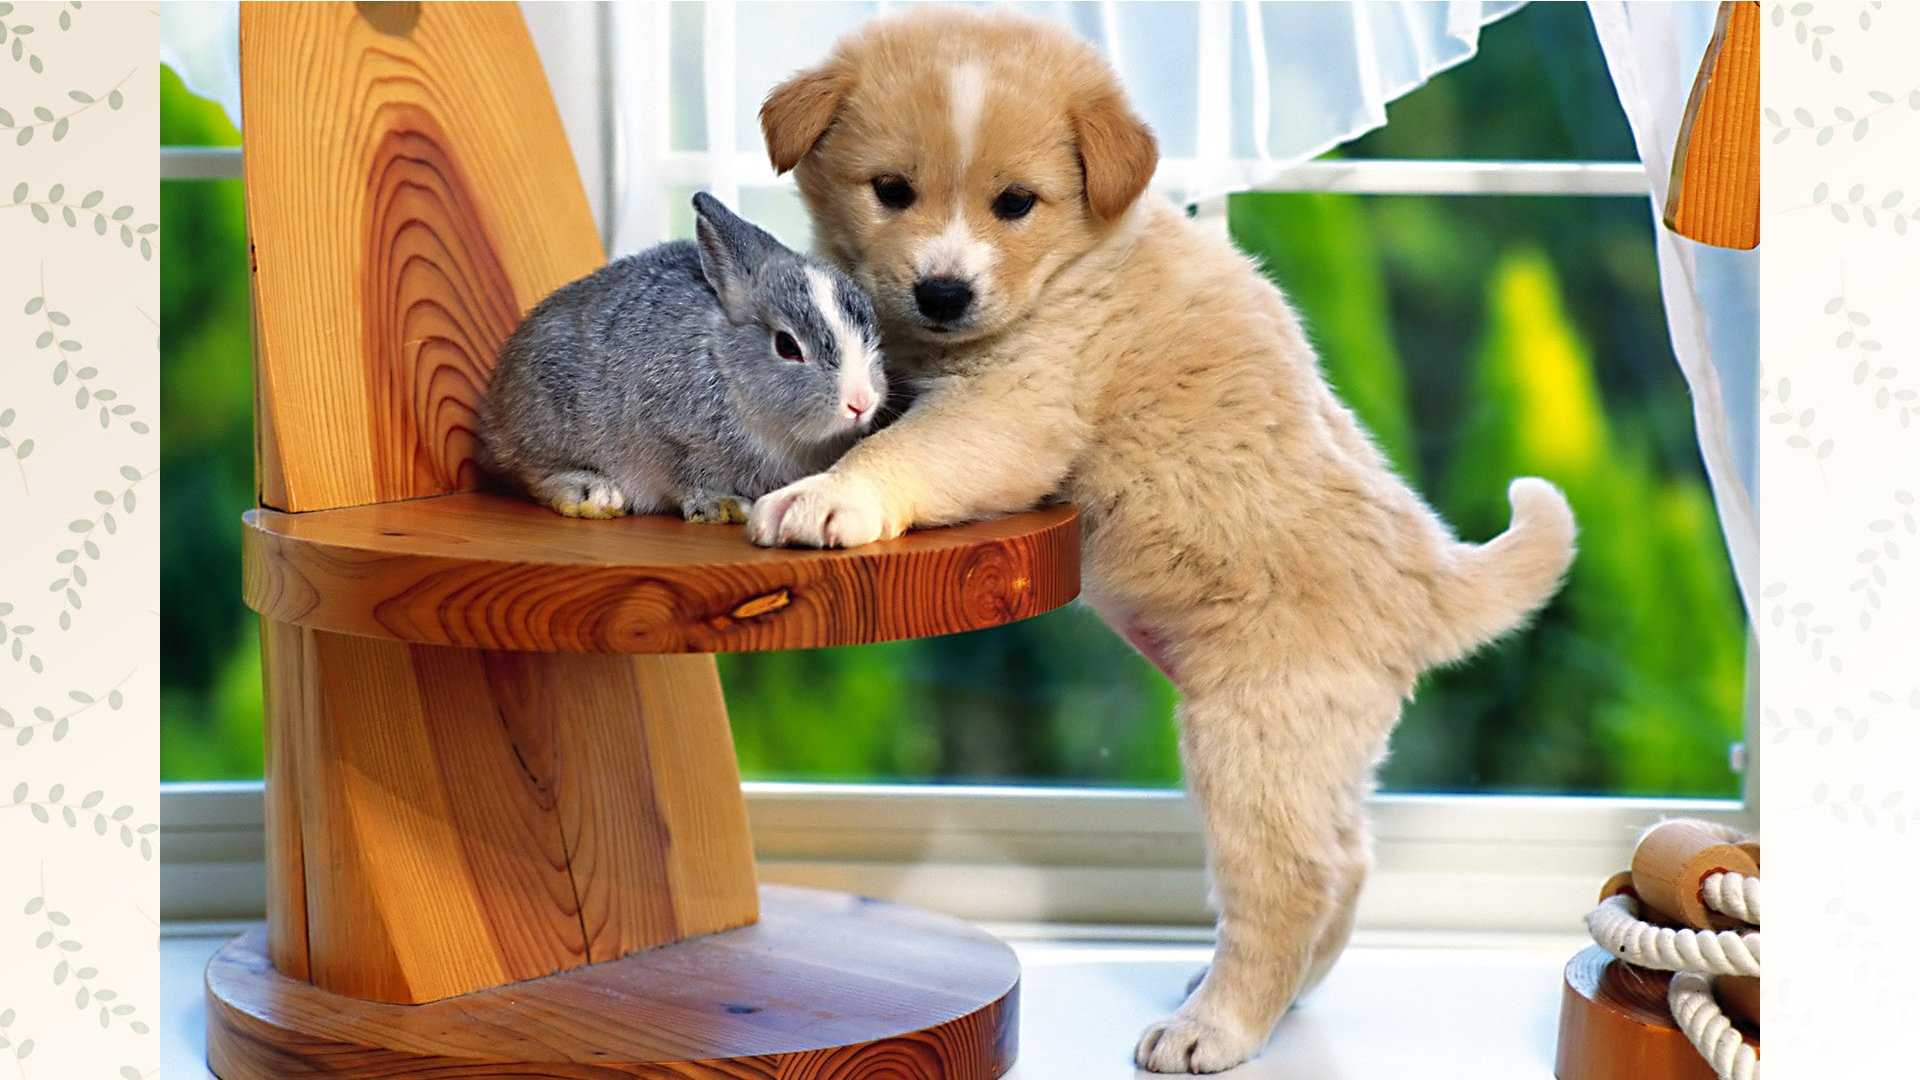 Bunny and Puppy Dog  Full HD Desktop Wallpapers 1080p